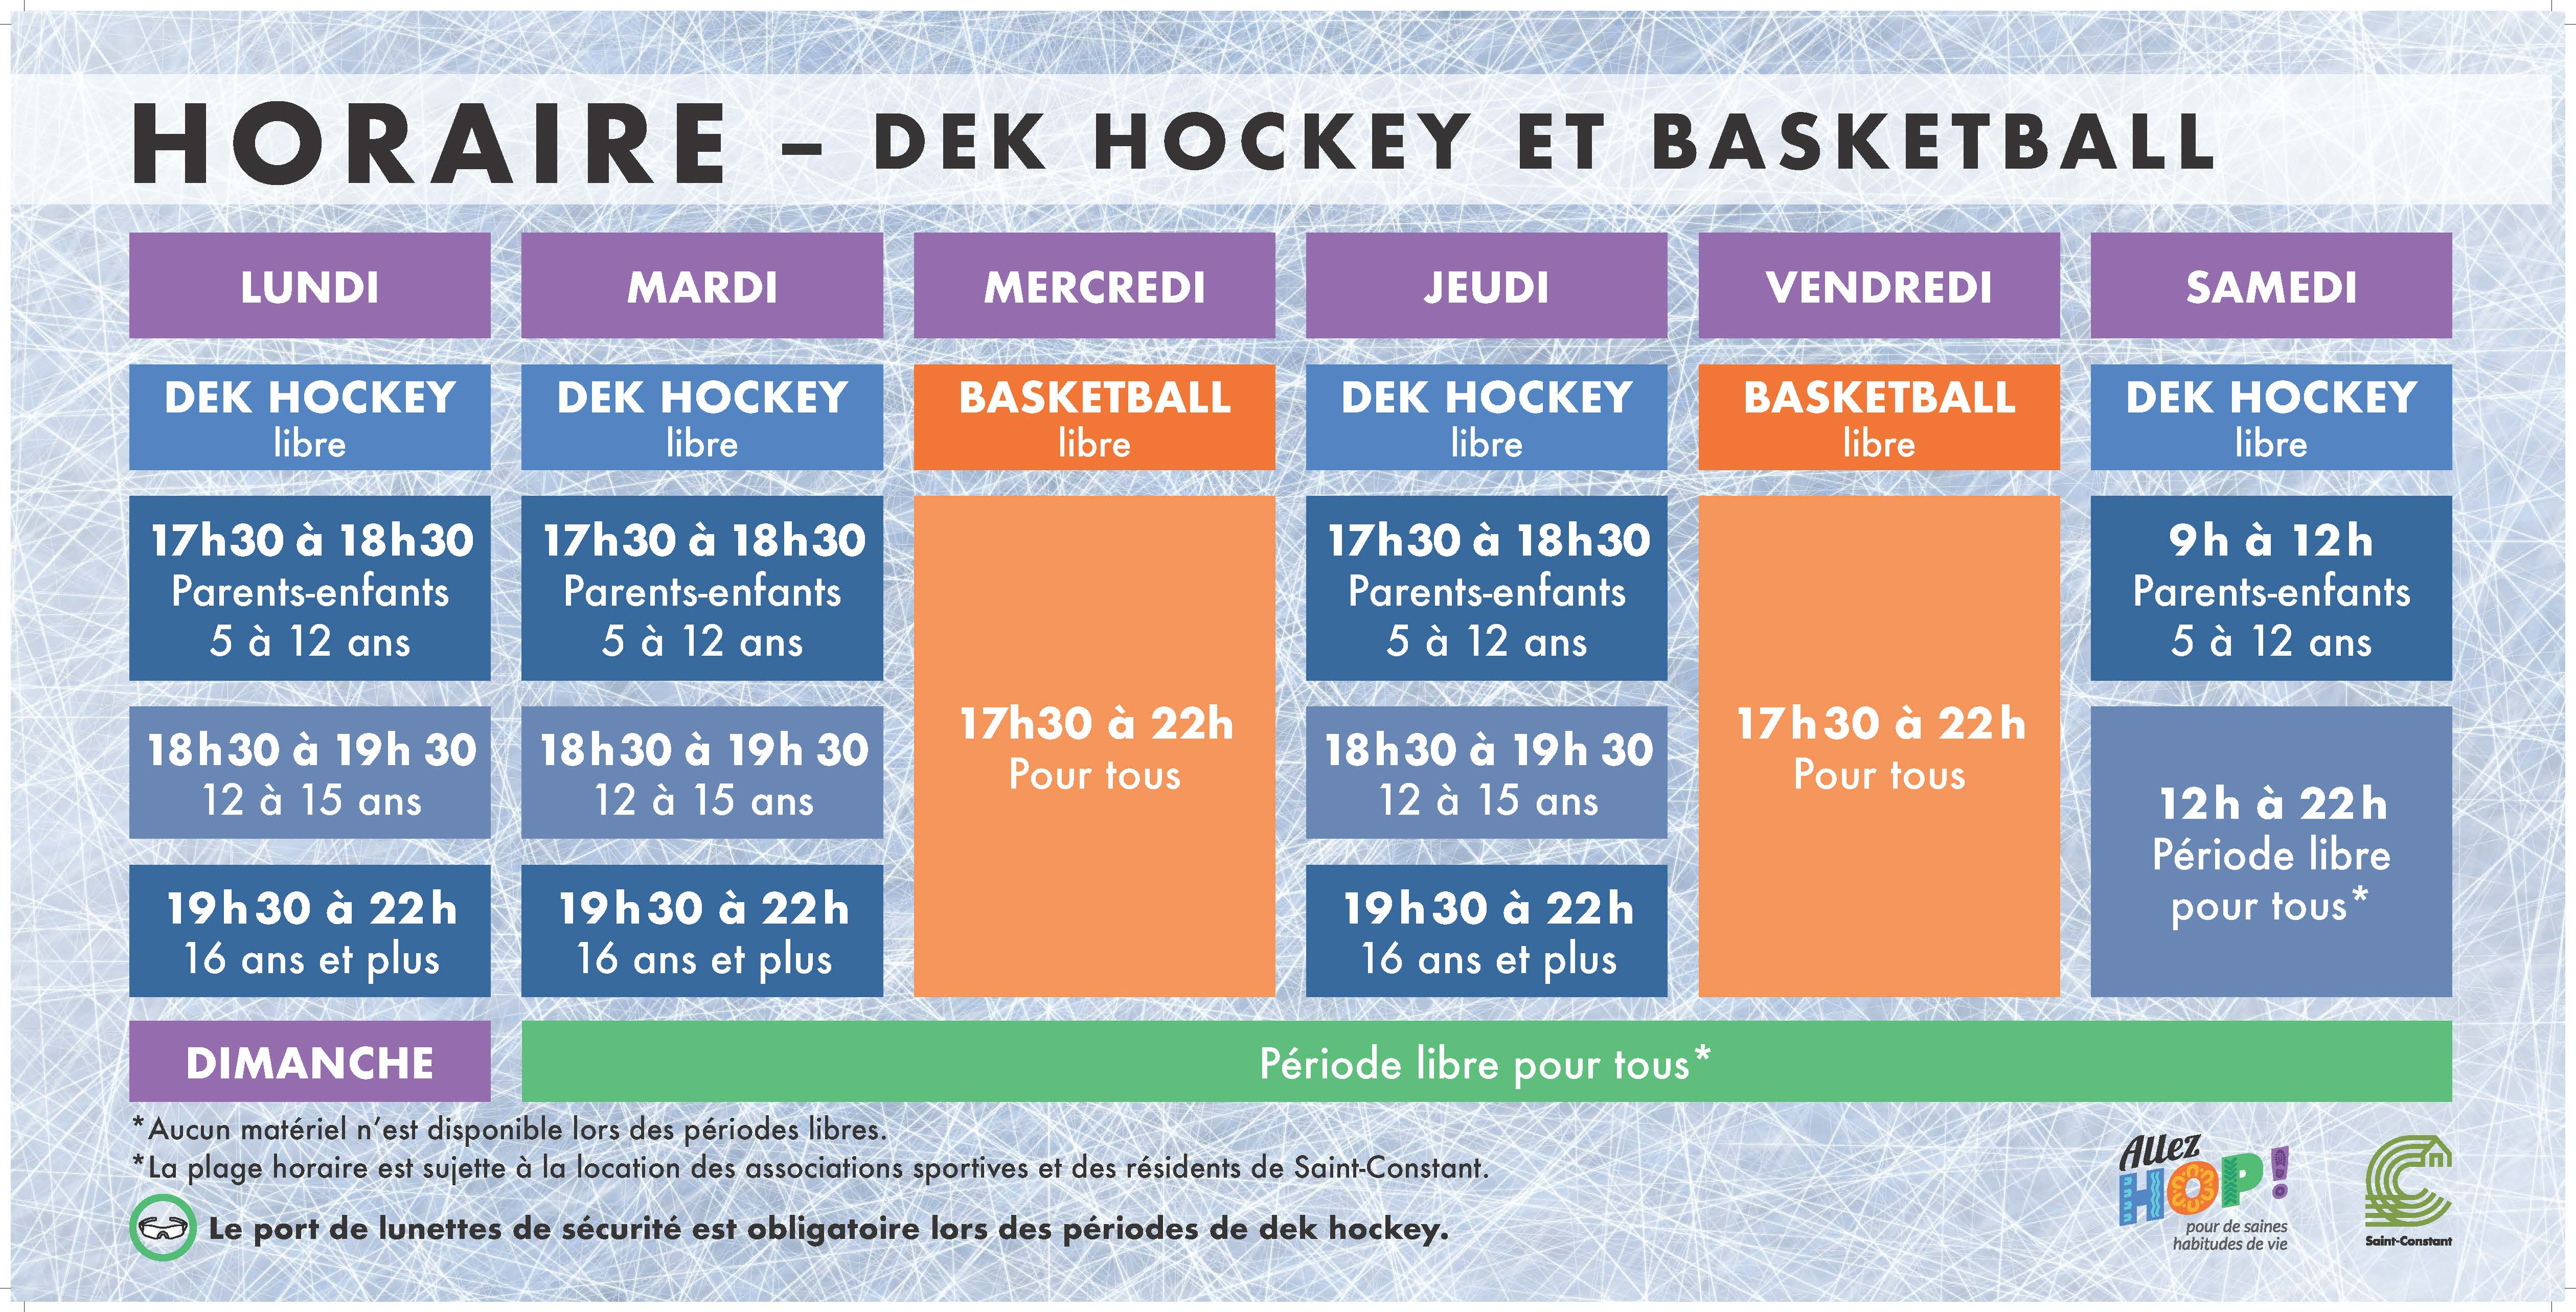 Horaire dek hockey basketball.jpg (1000 KB)